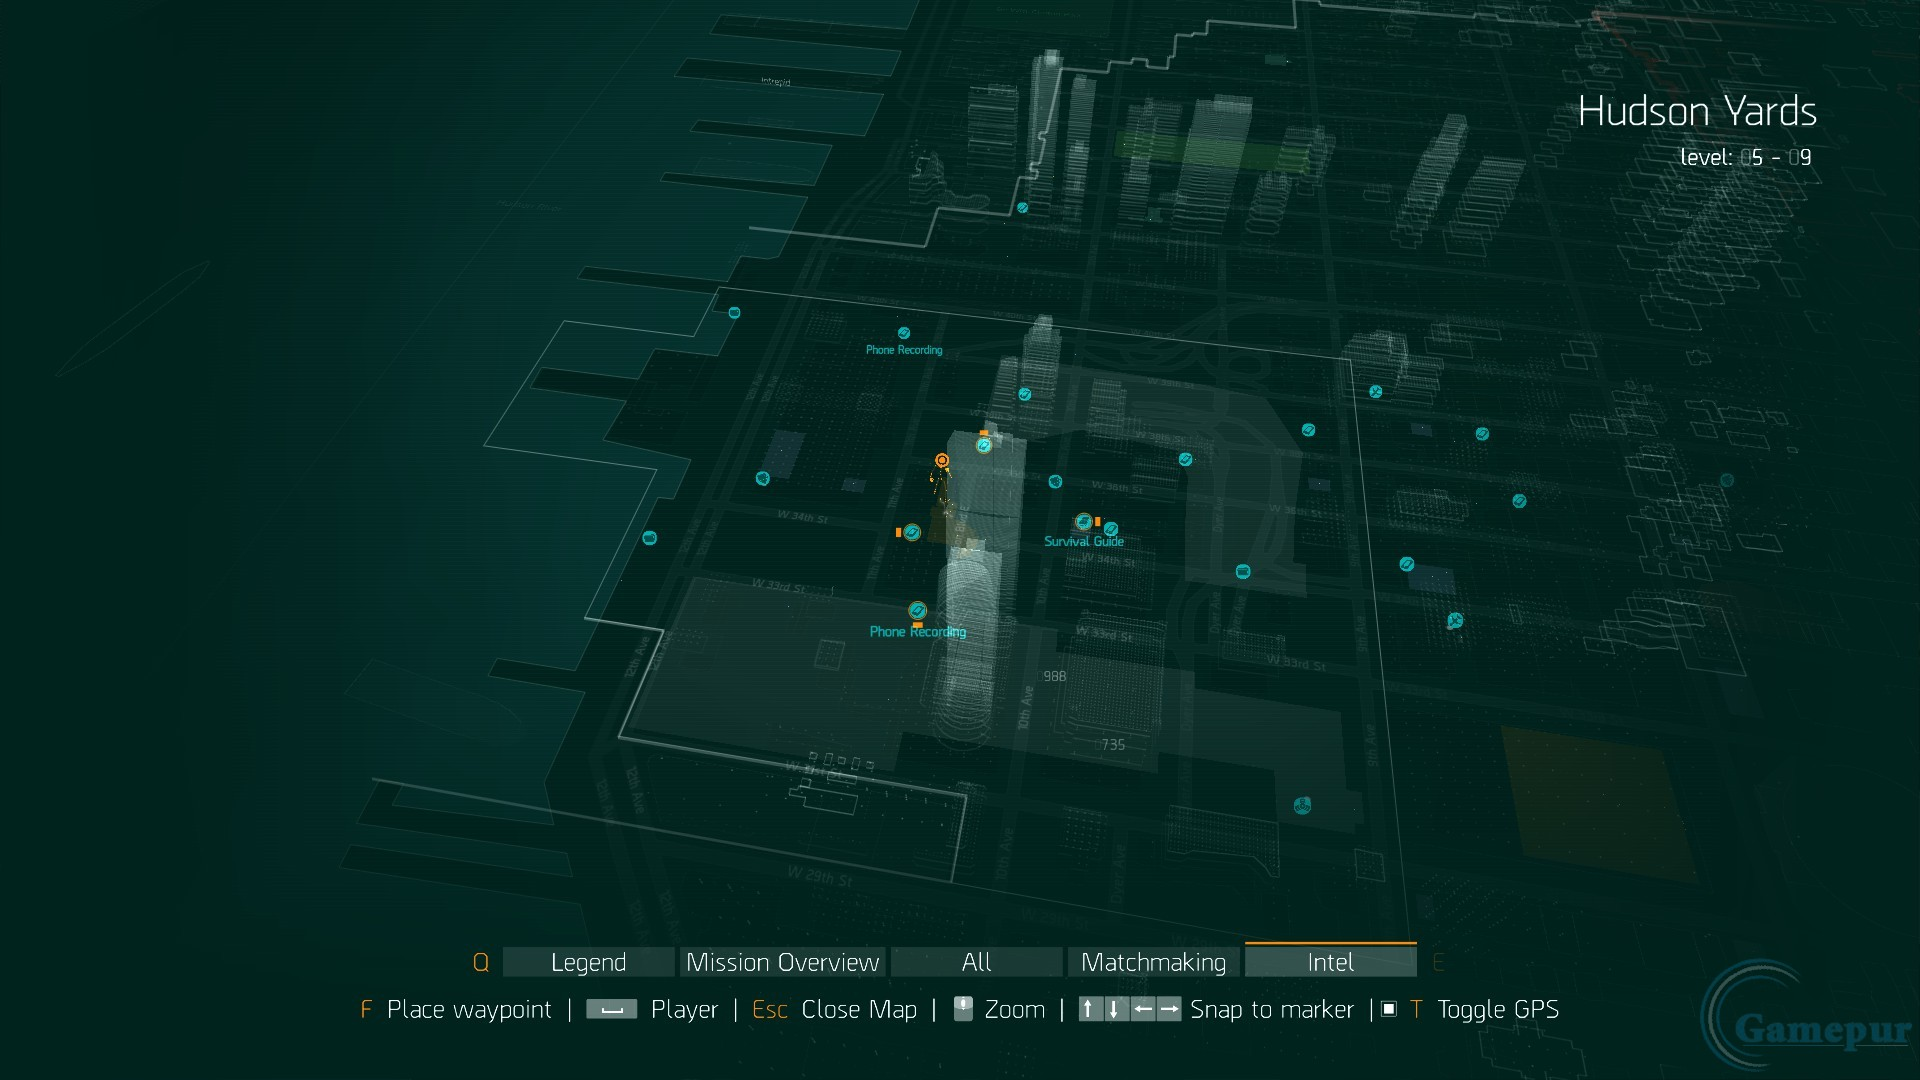 This The Division 2 Crafting Material Location Guide will tell you about each of the individual crafting material items you can find and how you can go about farming some for crafting and projects. This The Division 2 Crafting Material Location Guide is a general overlook of the different materials and components that you can obtain as you explore Washington D.C and complete various missions, projects and objectives. We are working on more specialized guides for each crafting material.